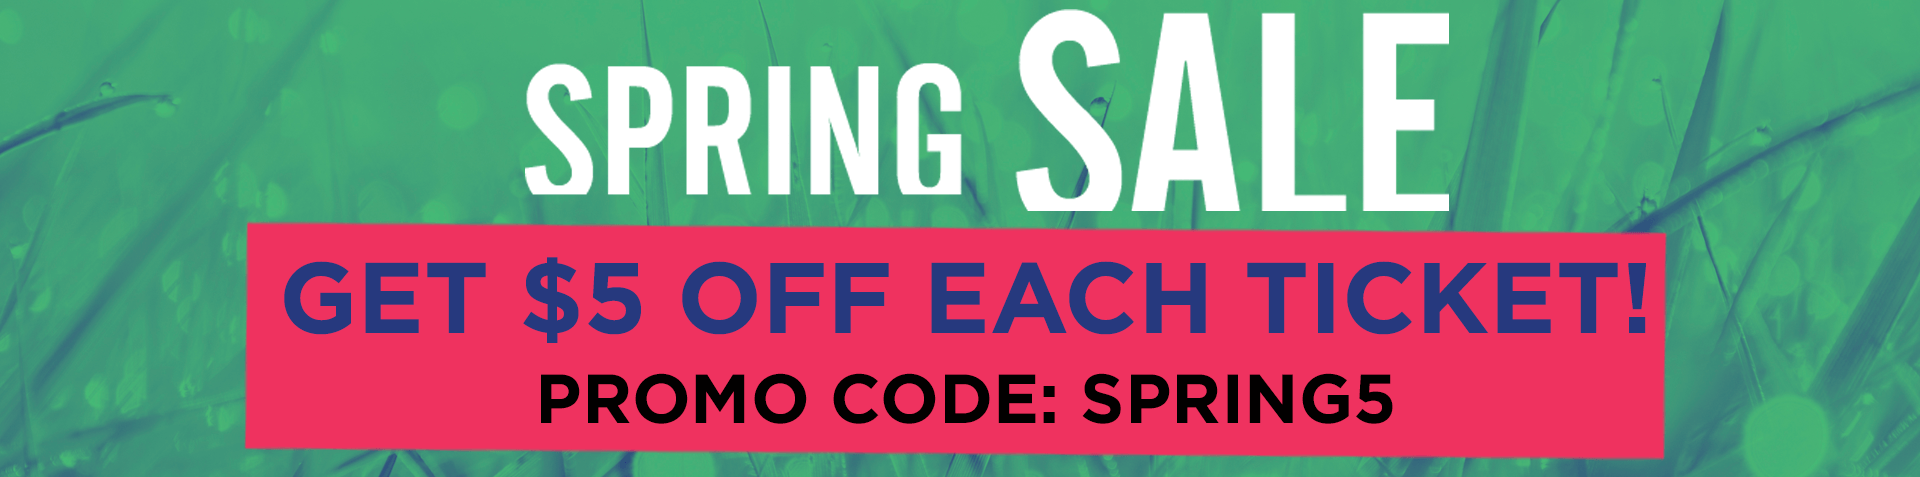 Spring Sale through March 16, save $5 per ticket on spring performances. Promo Code: SPRING5